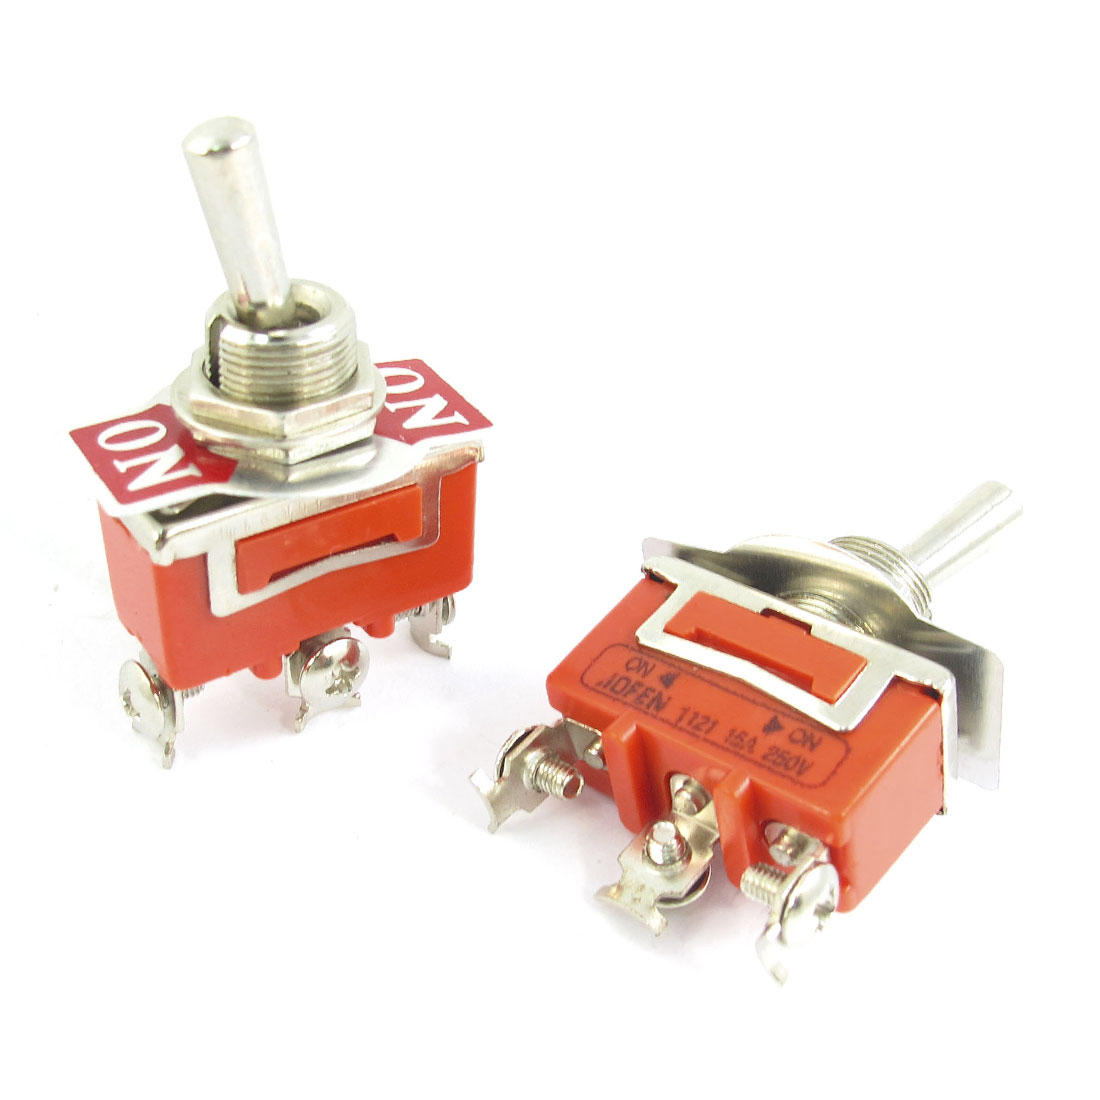 2 Pcs Panel Mount 3 Terminal Wobble Lever SPDT ON-ON Toggle Switch 250V 15A